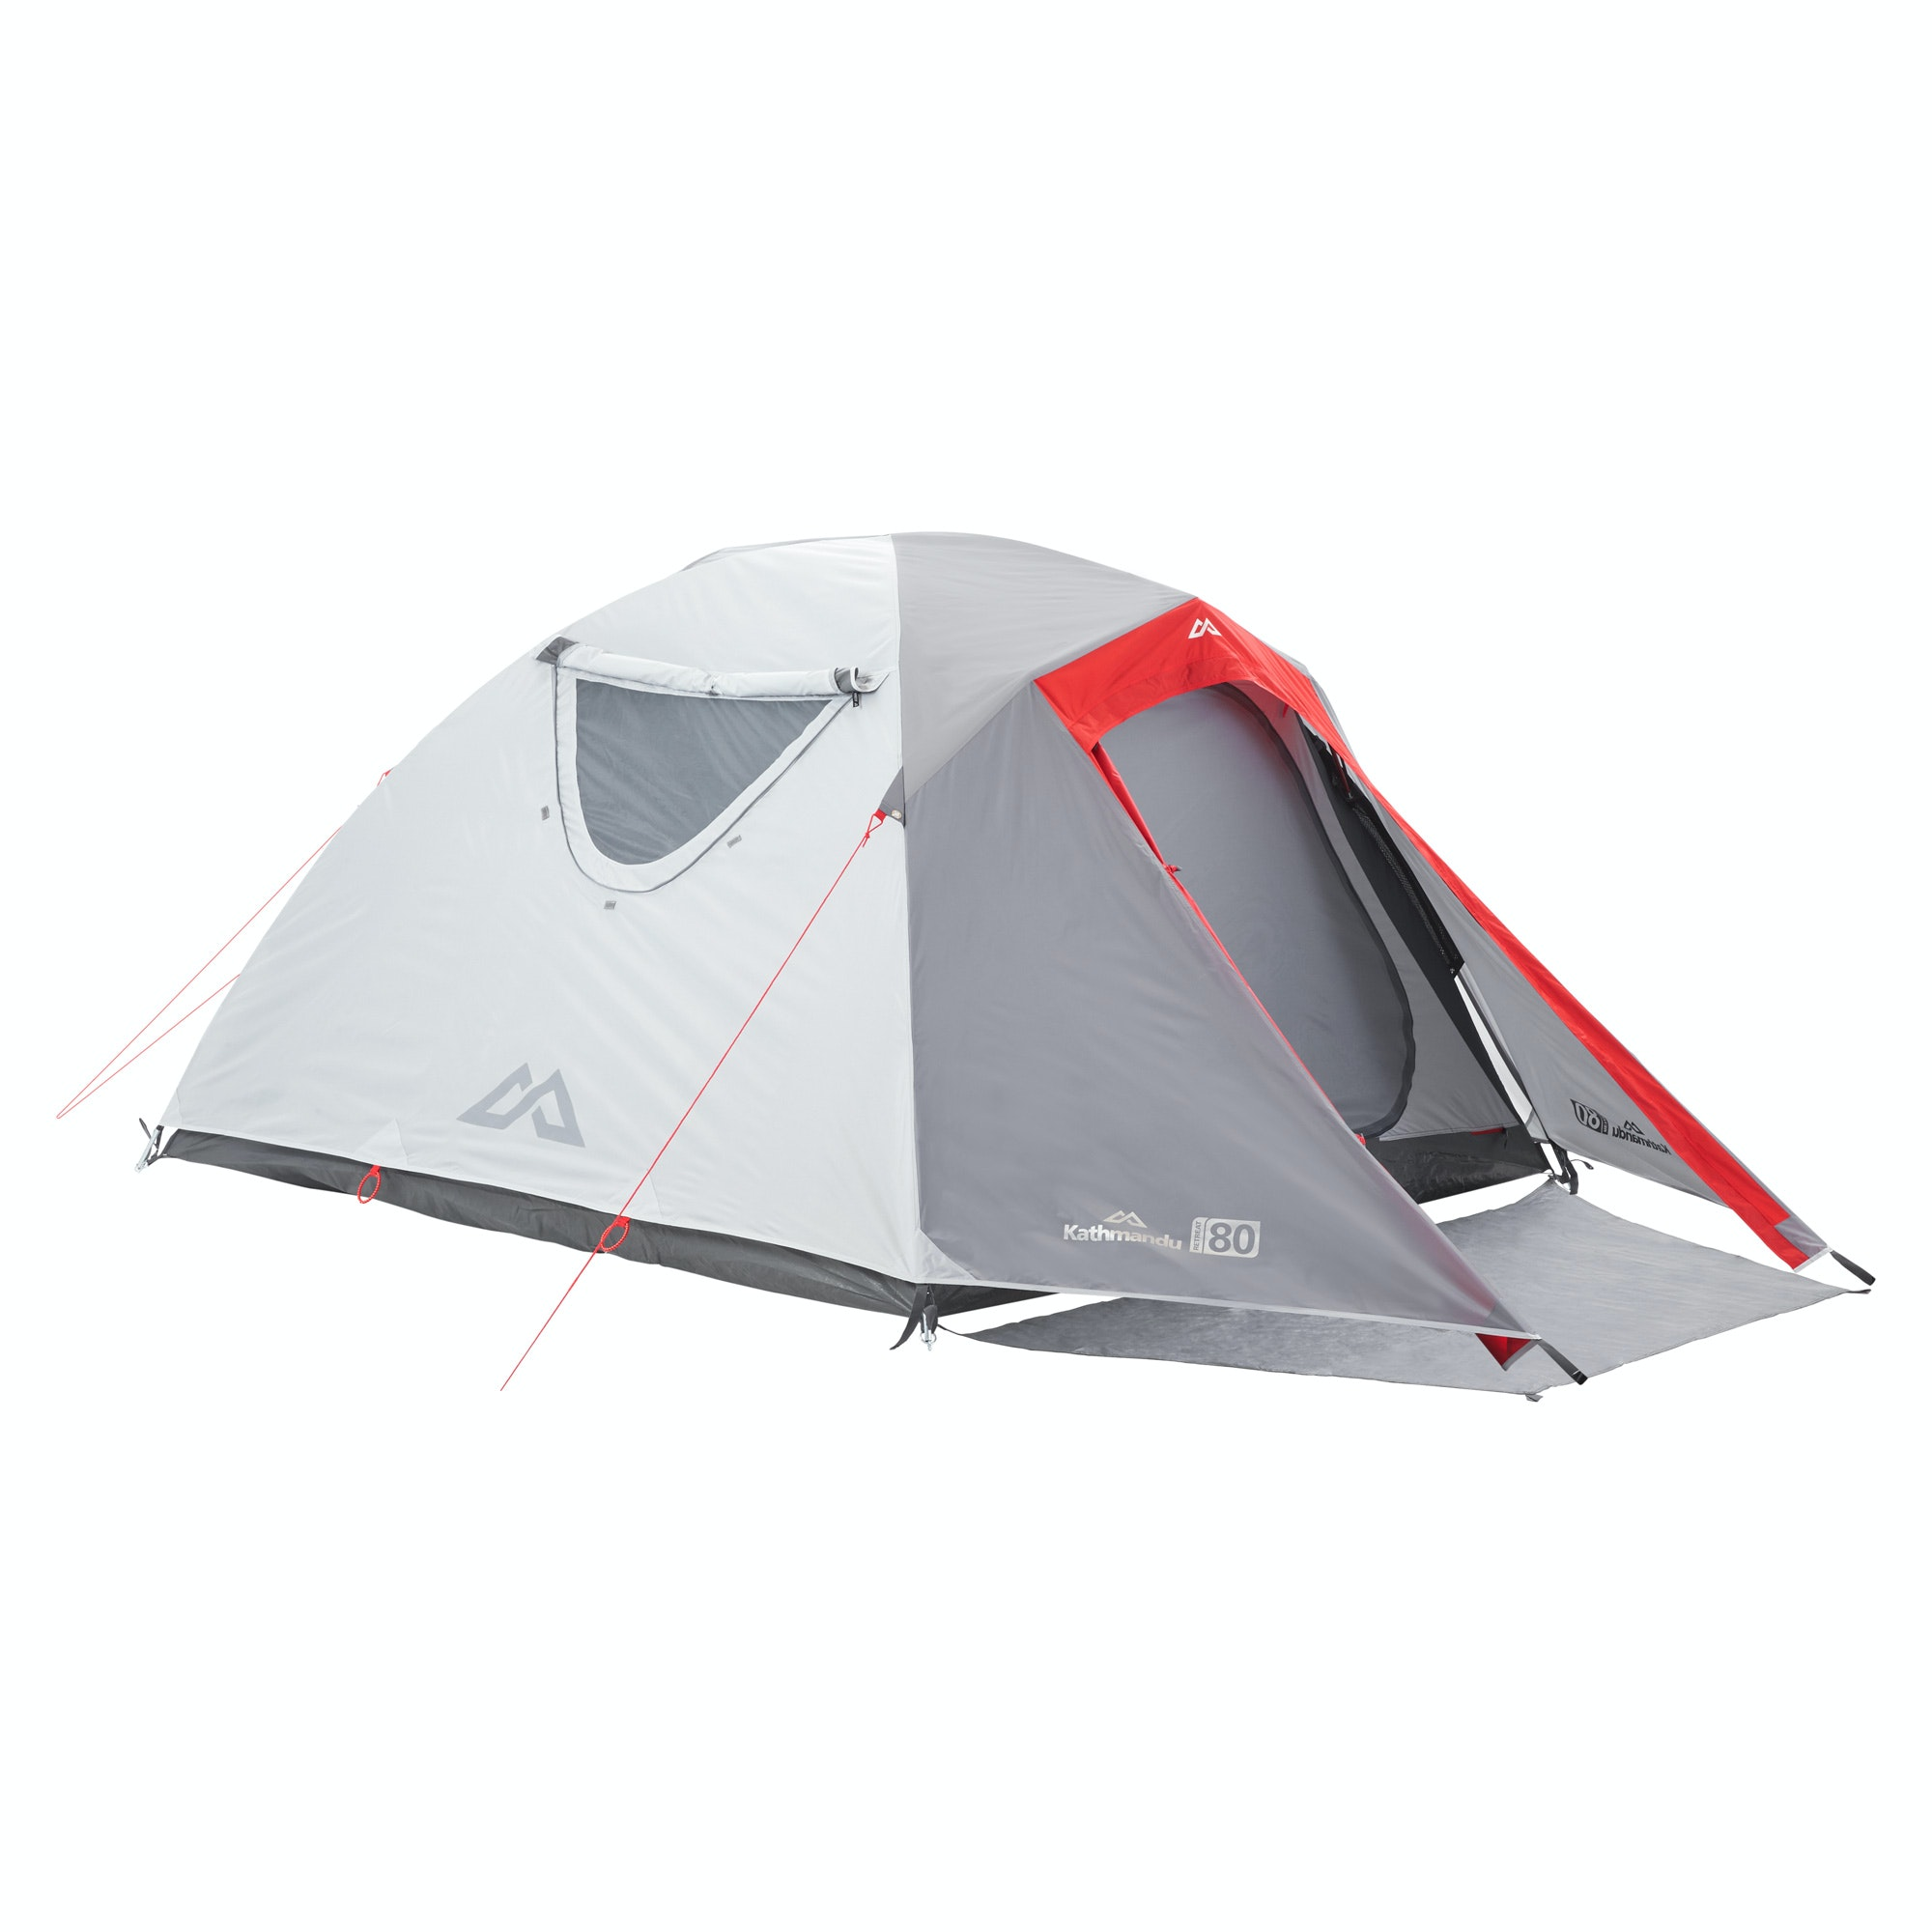 H41  sc 1 st  Kathmandu & Retreat 80 3 Person Tent - Warm Grey/Sunset